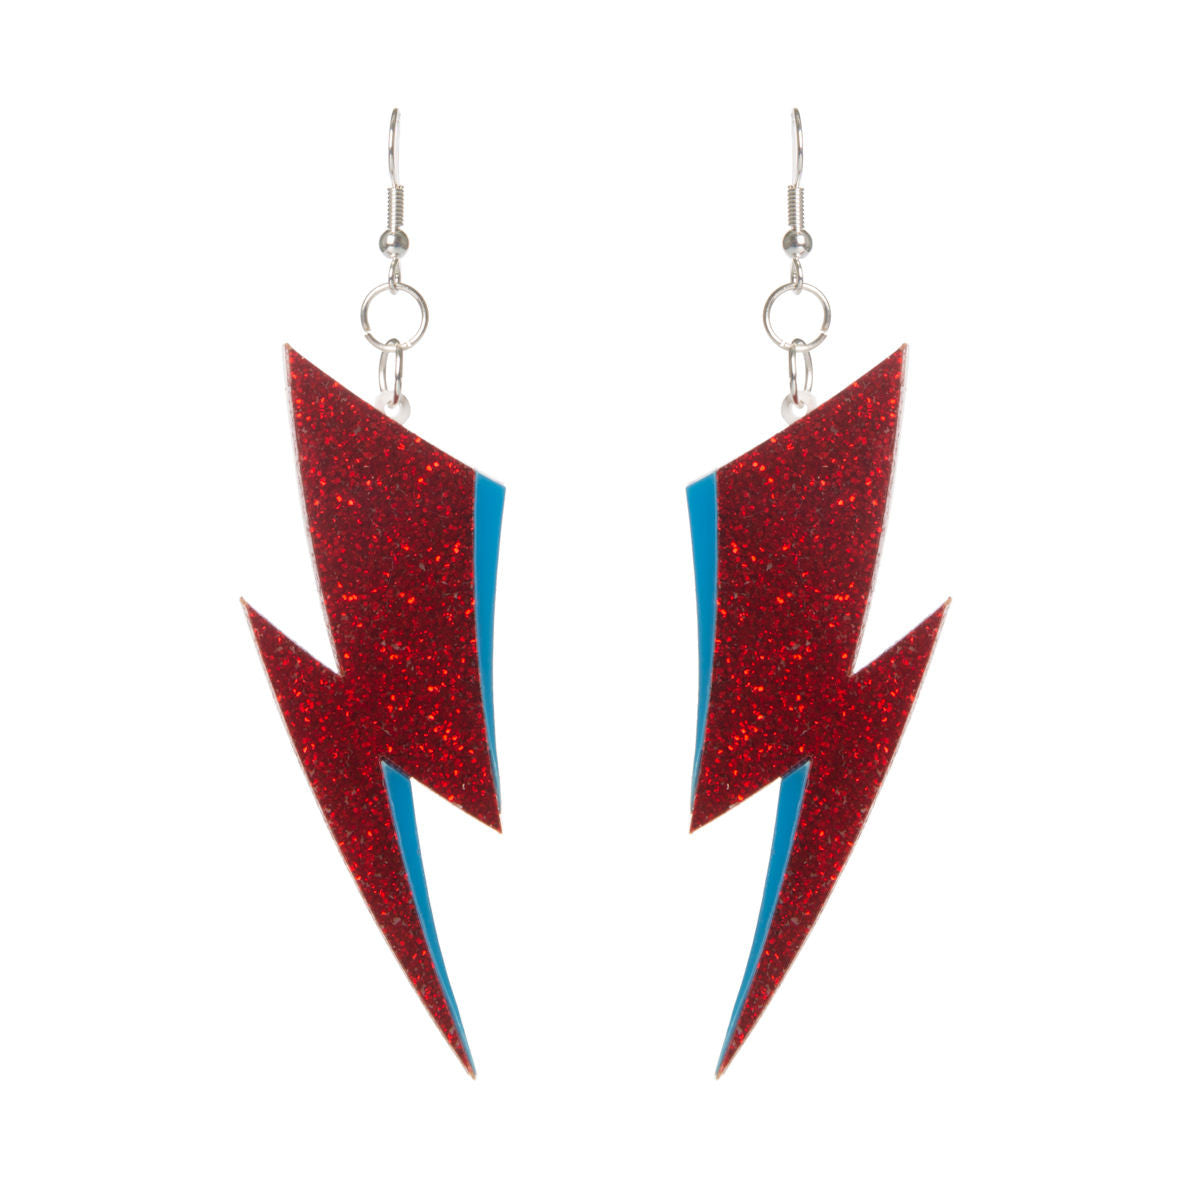 Sugar & Vice Aladdin Sane Earrings